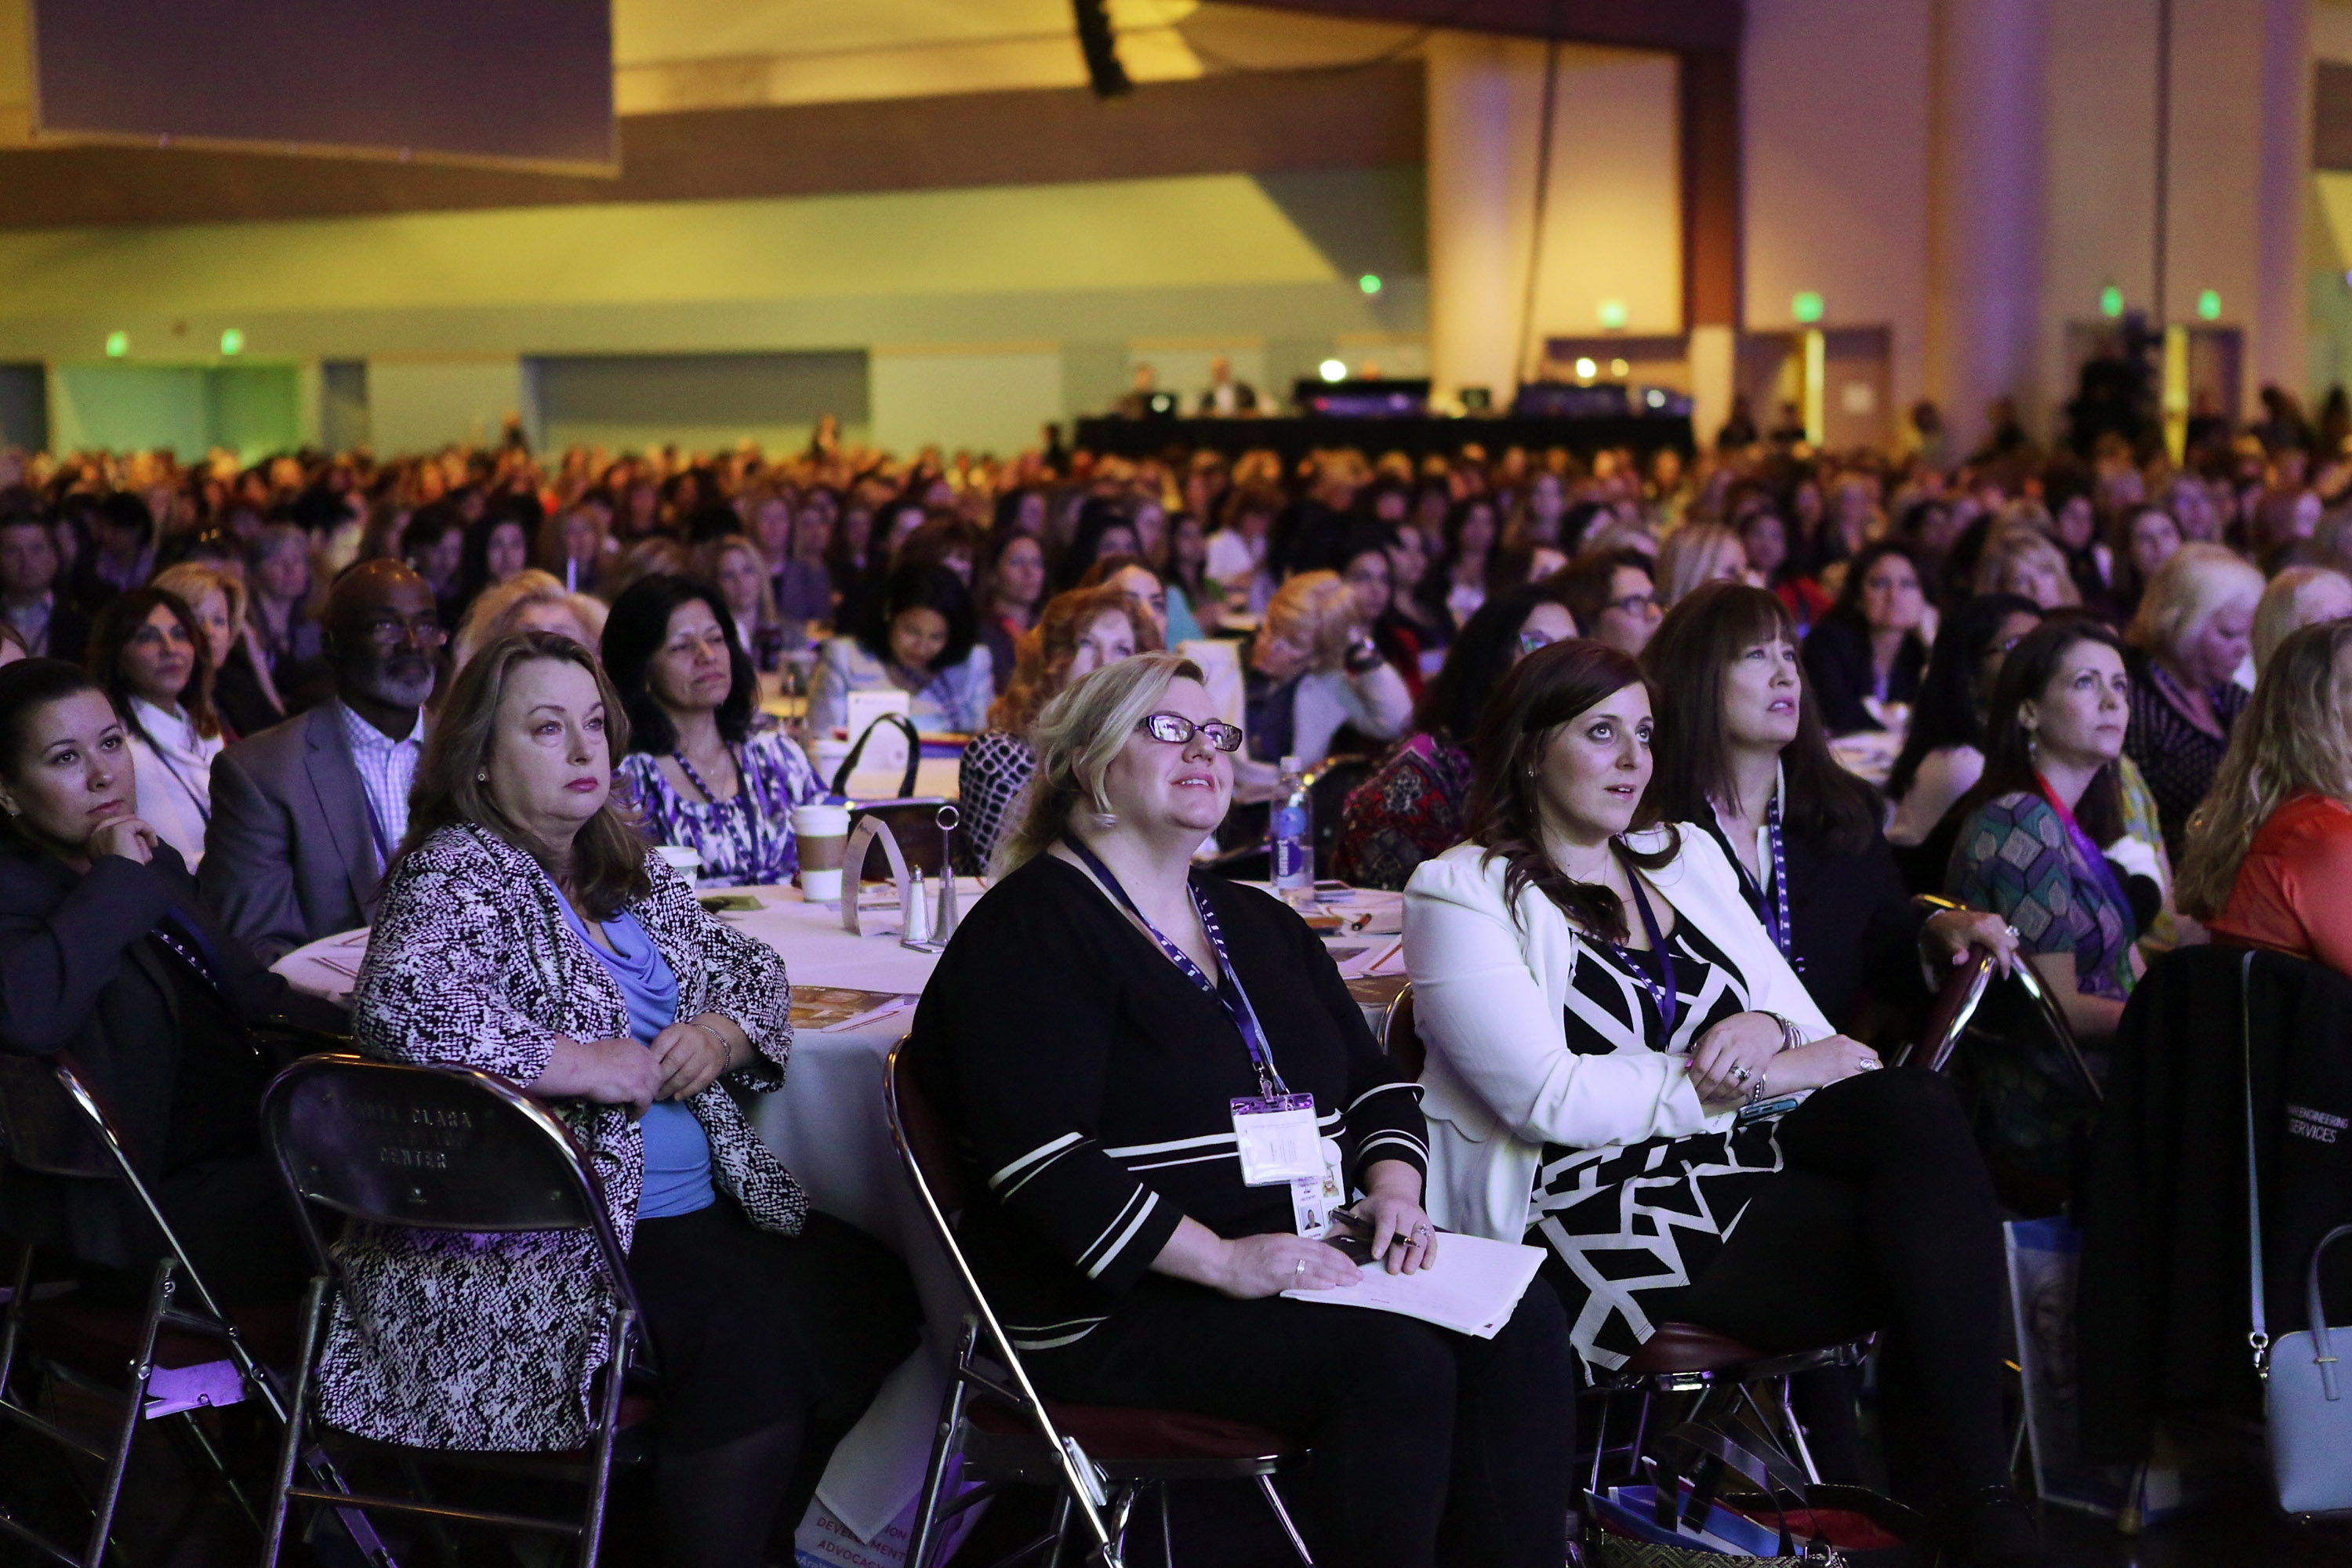 Crowd at Lead On Watermark Silicon Valley Conference for Women at Santa Clara Convention Center on February 24, 2015.